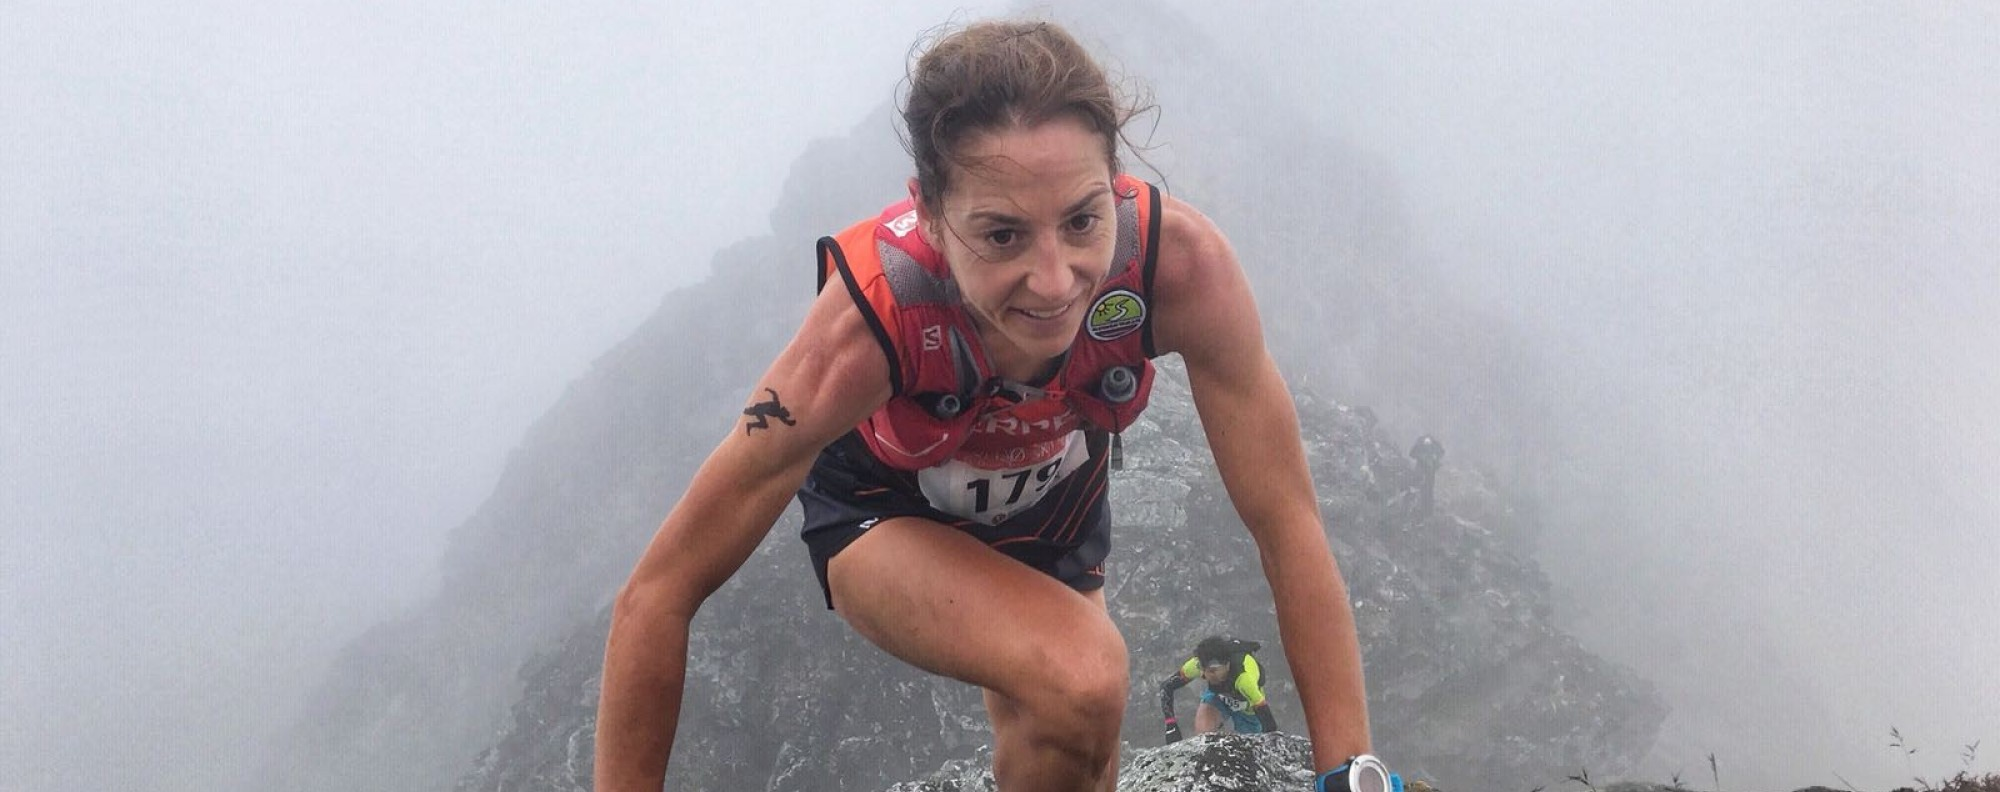 Ragna Debats and her family are travelling the world, running ultra-marathons on every continent. Photo: Migu Skyrunner World Series